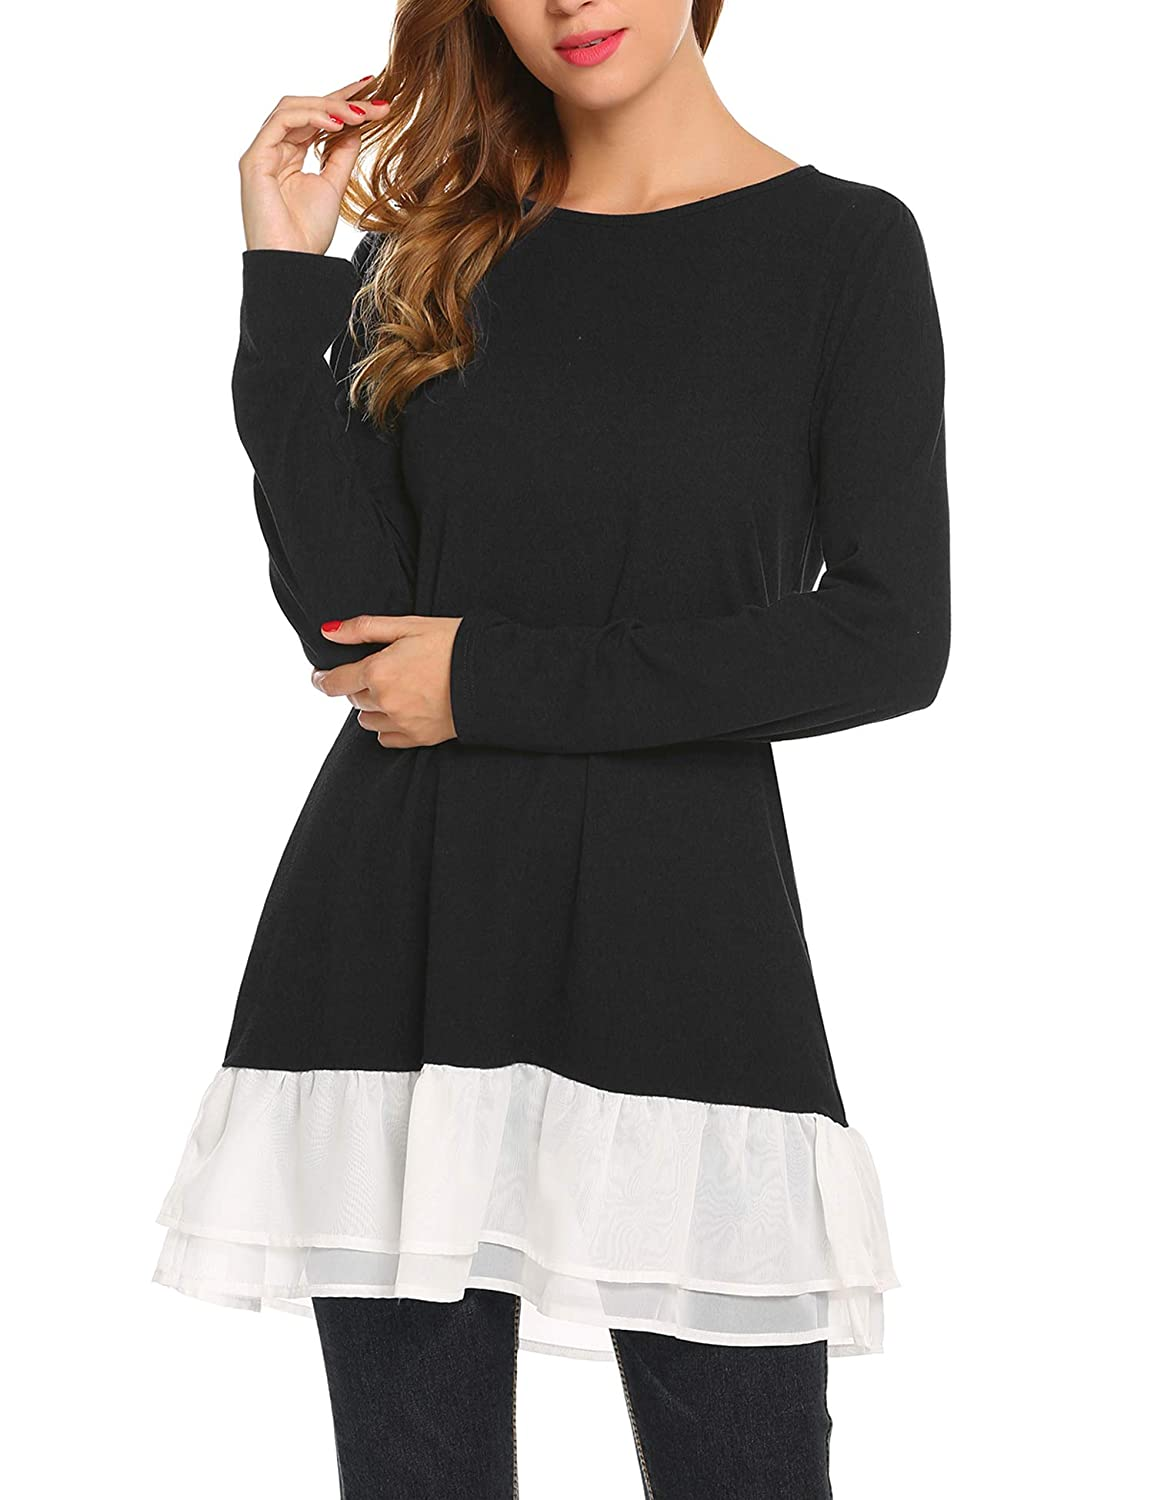 Zeagoo Womens Long Sleeve Tunic Dressy Top Casual Ruffle Hem Shirt